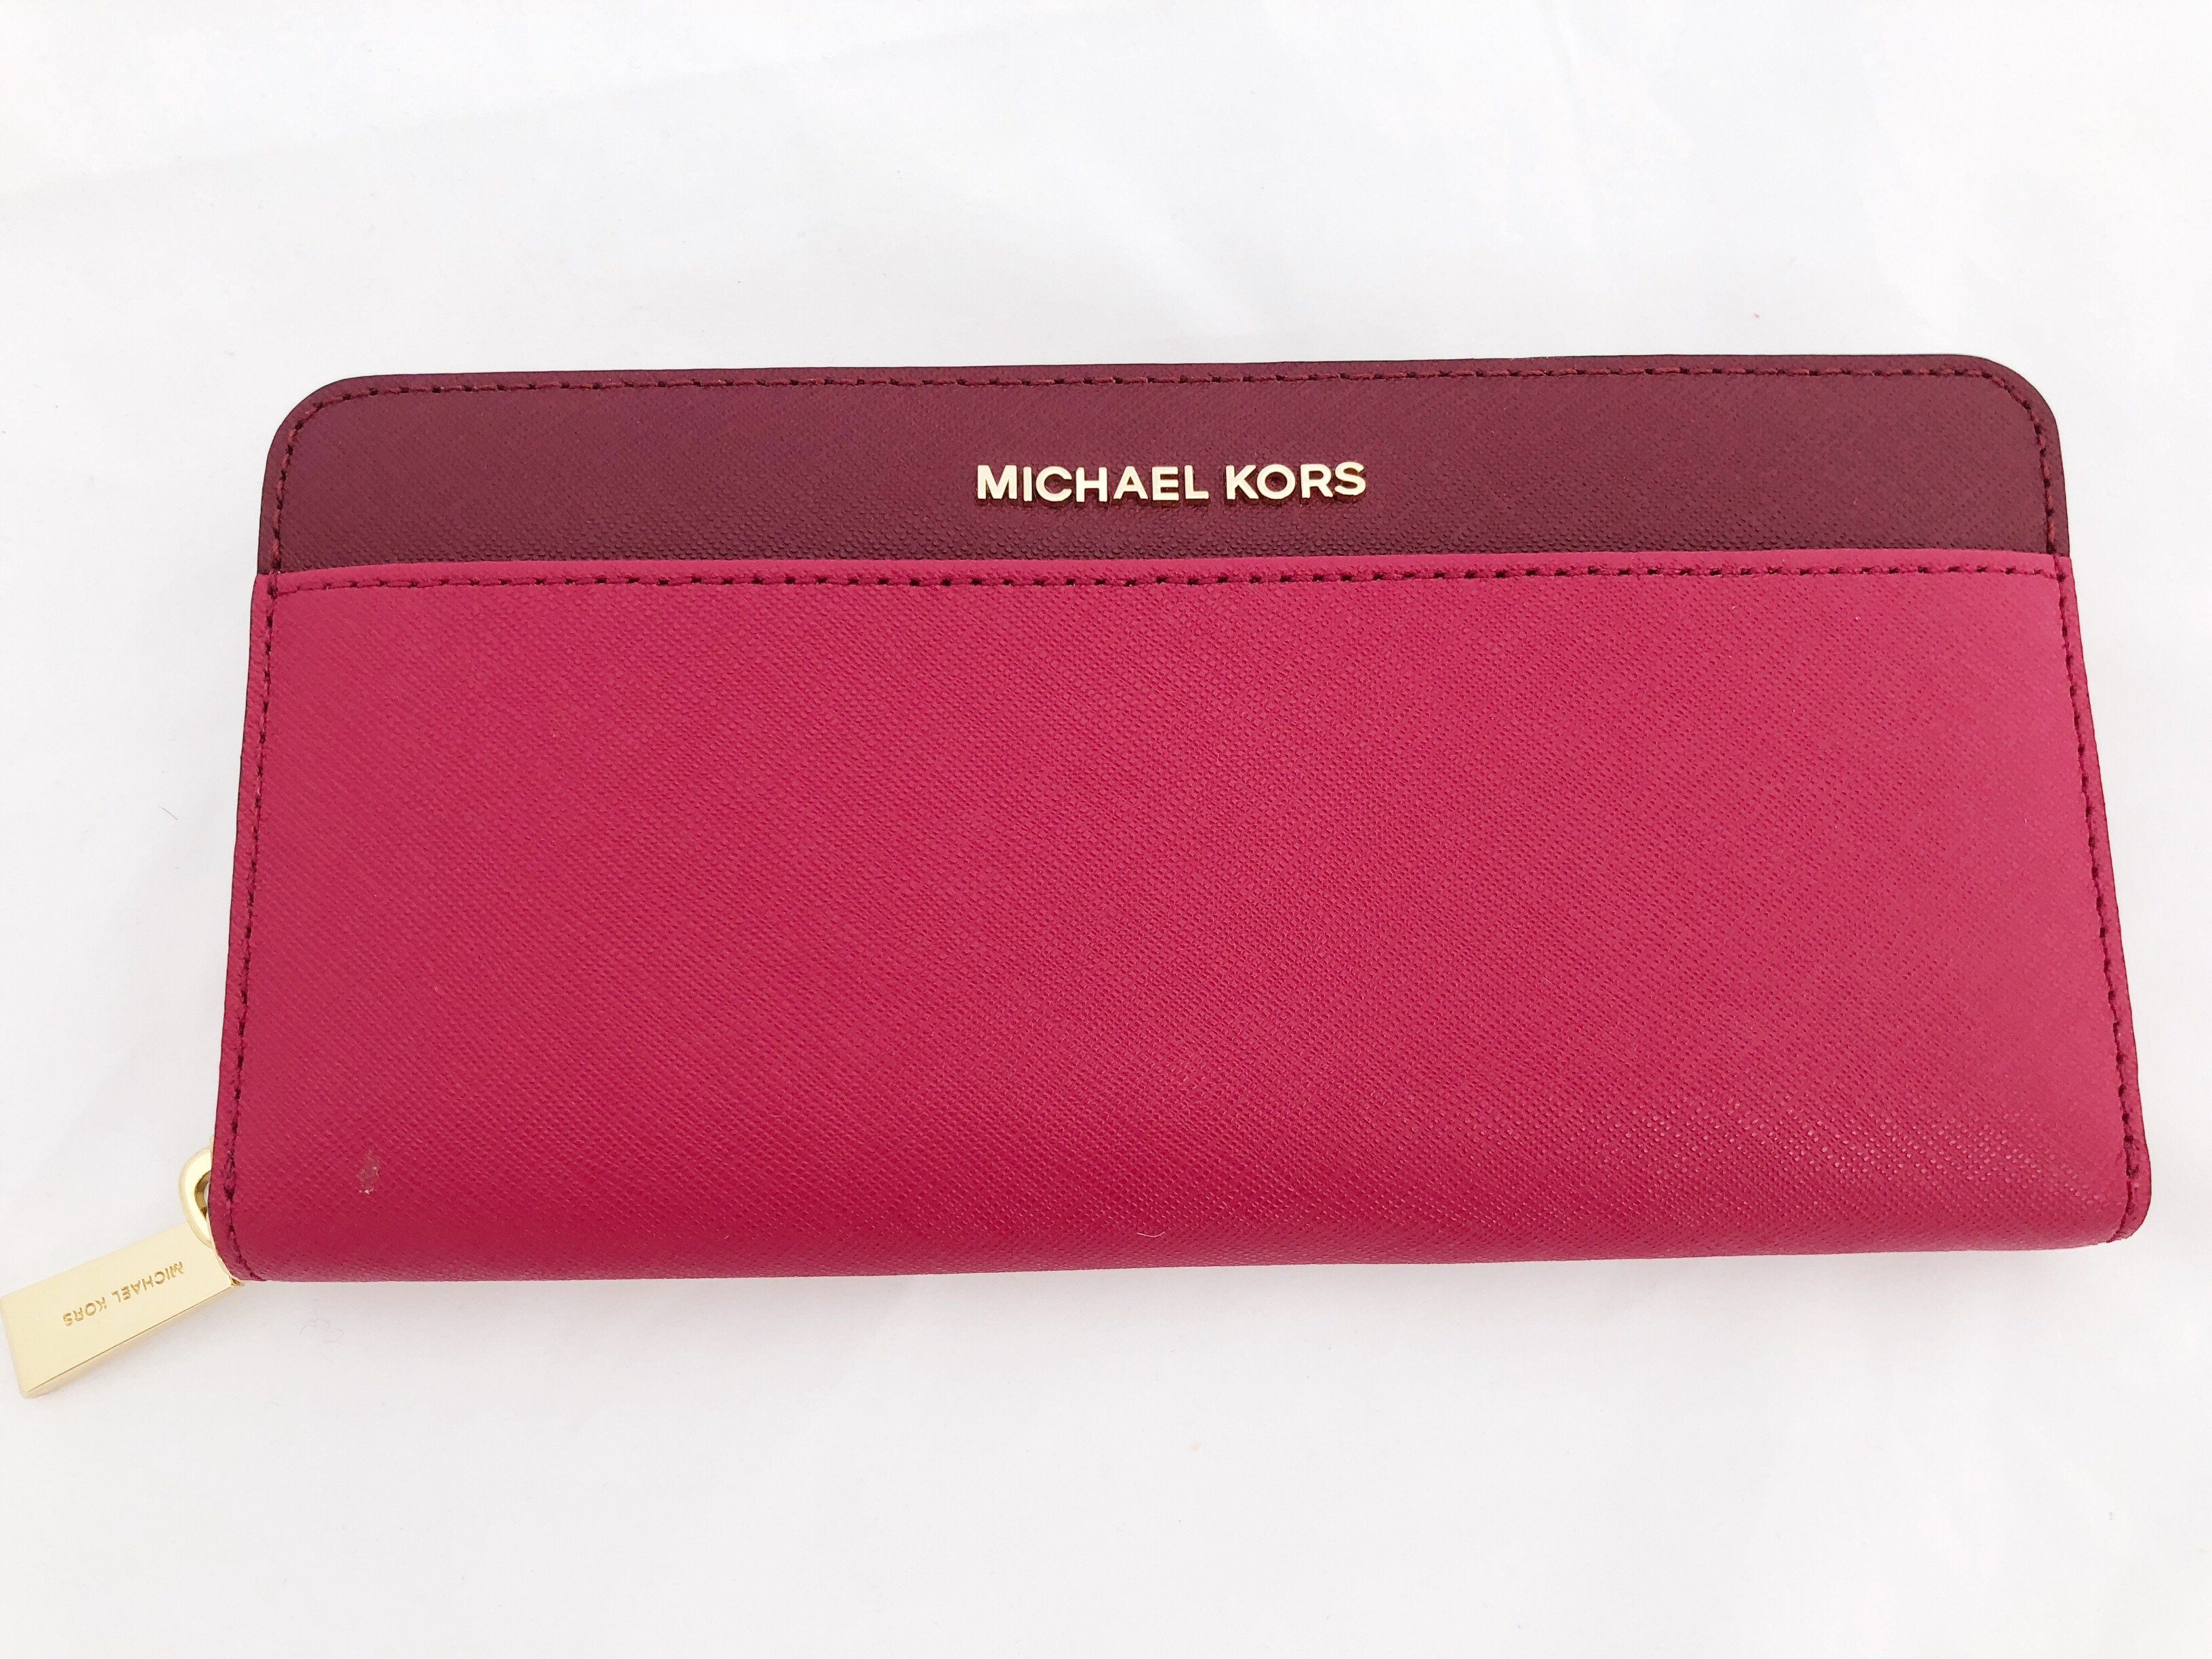 09502bed0ea2 NWT Michael Kors Money Pieces Pocket Zip Around Continental Leather Wallet  Pink Red #GabysBags #Handbags